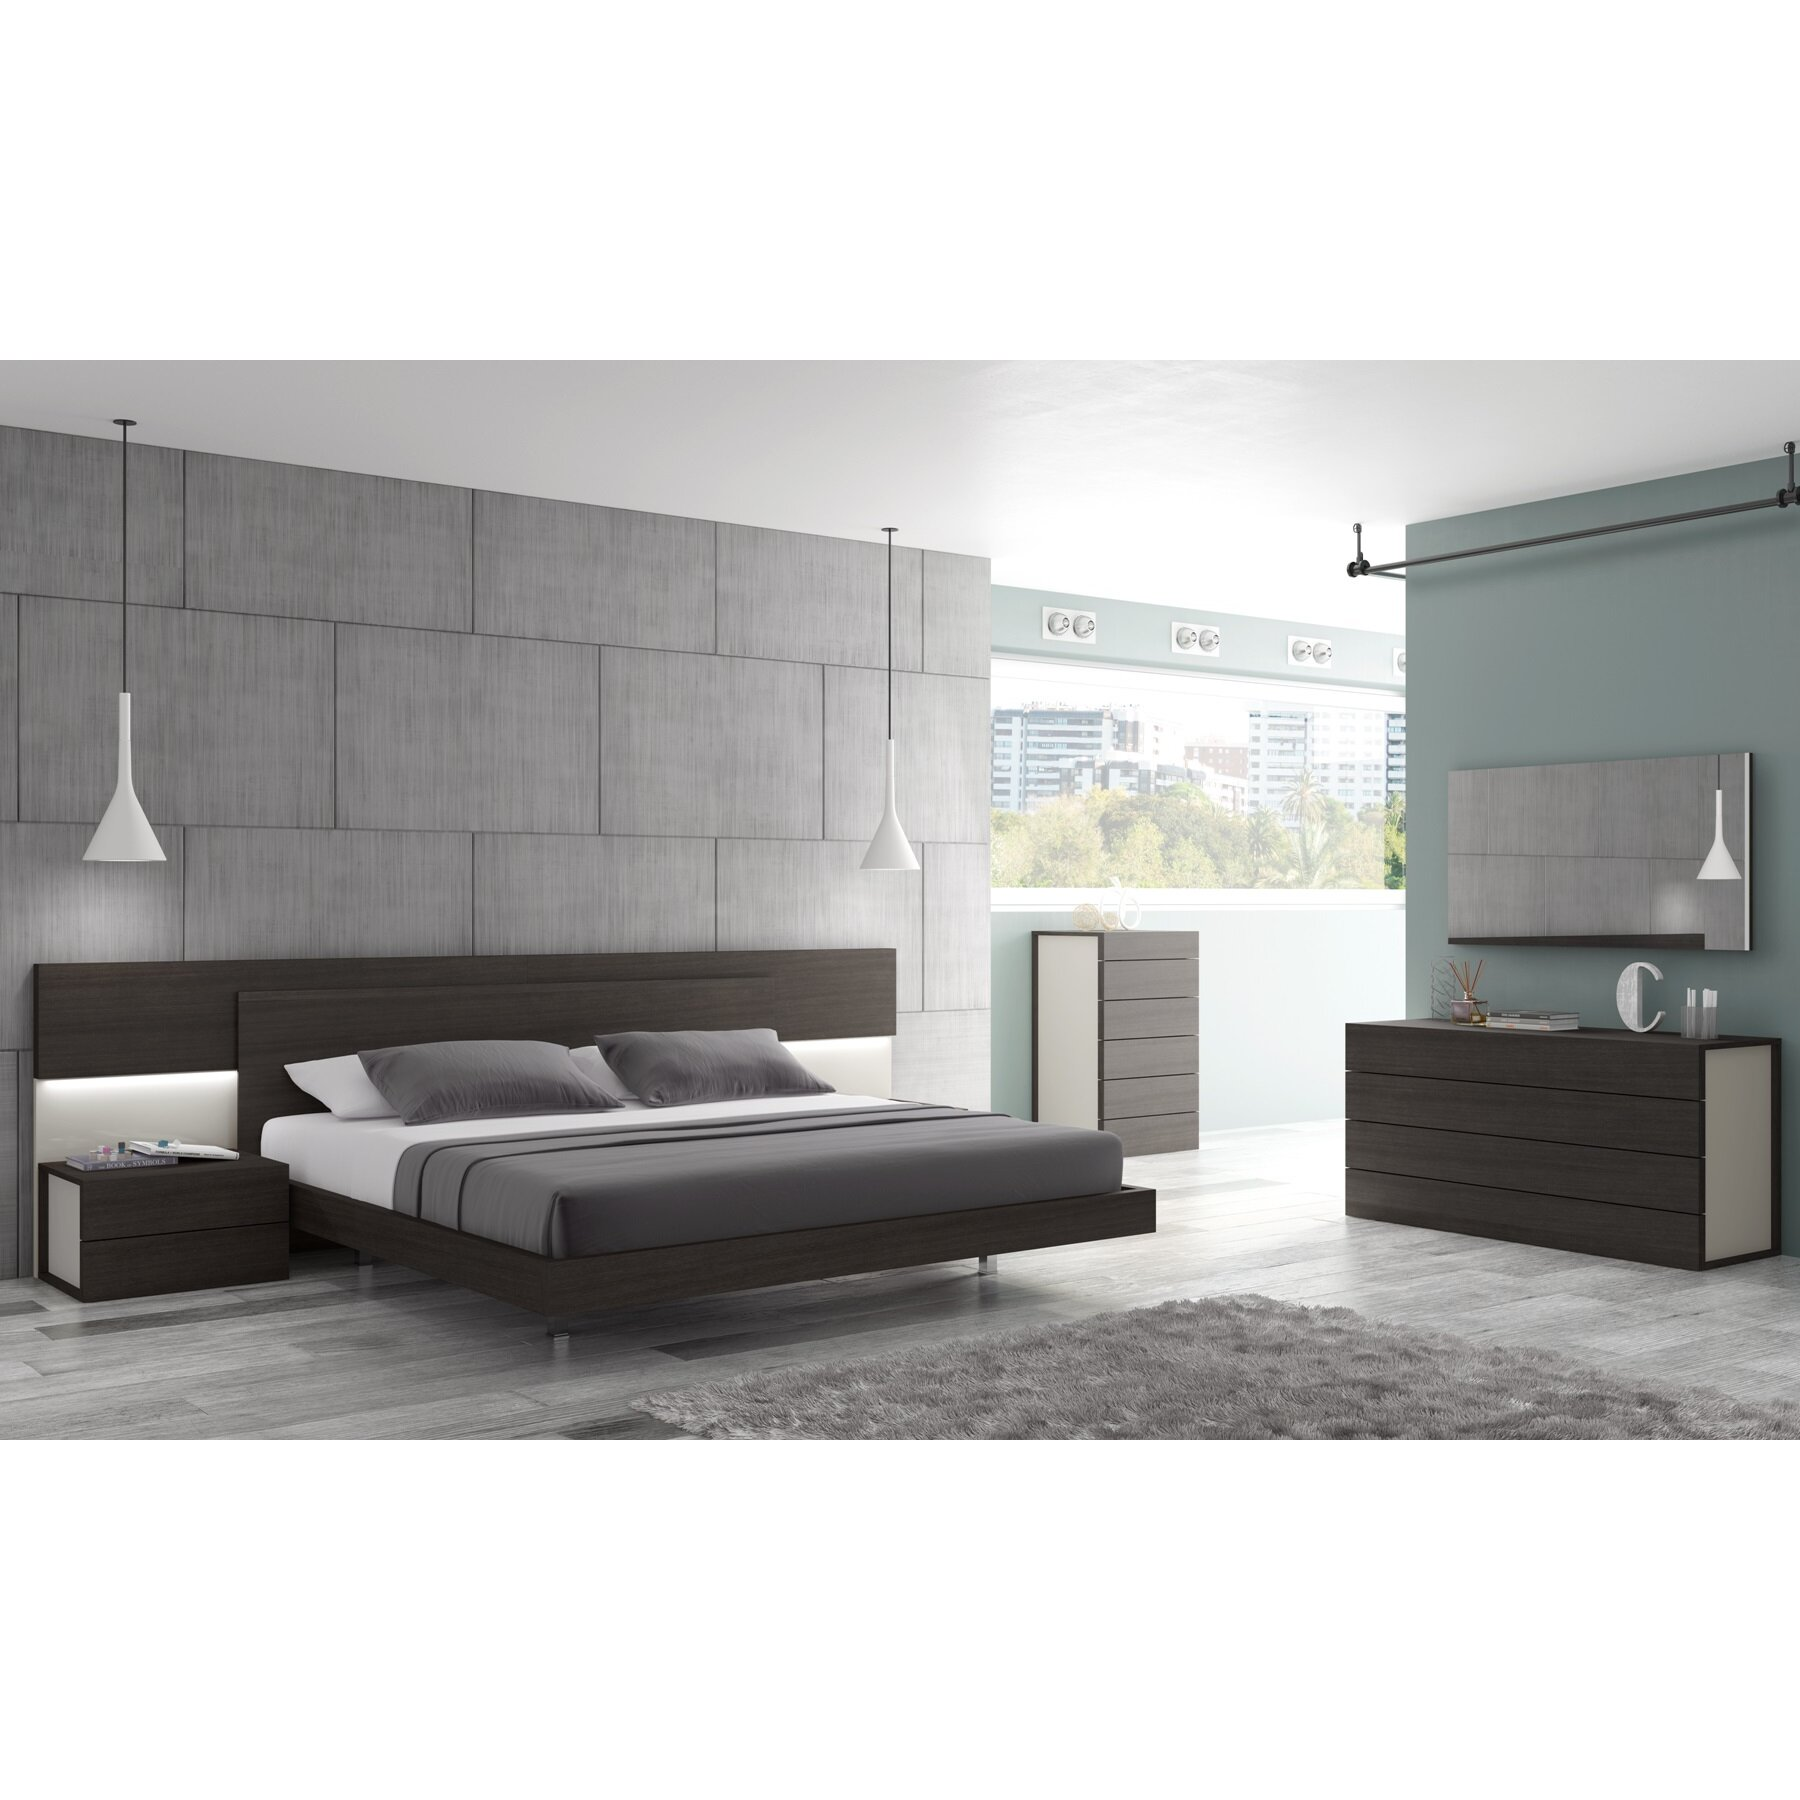 Modern black bedroom furniture - Black And White Bedroom Furniture Sets Image Of King